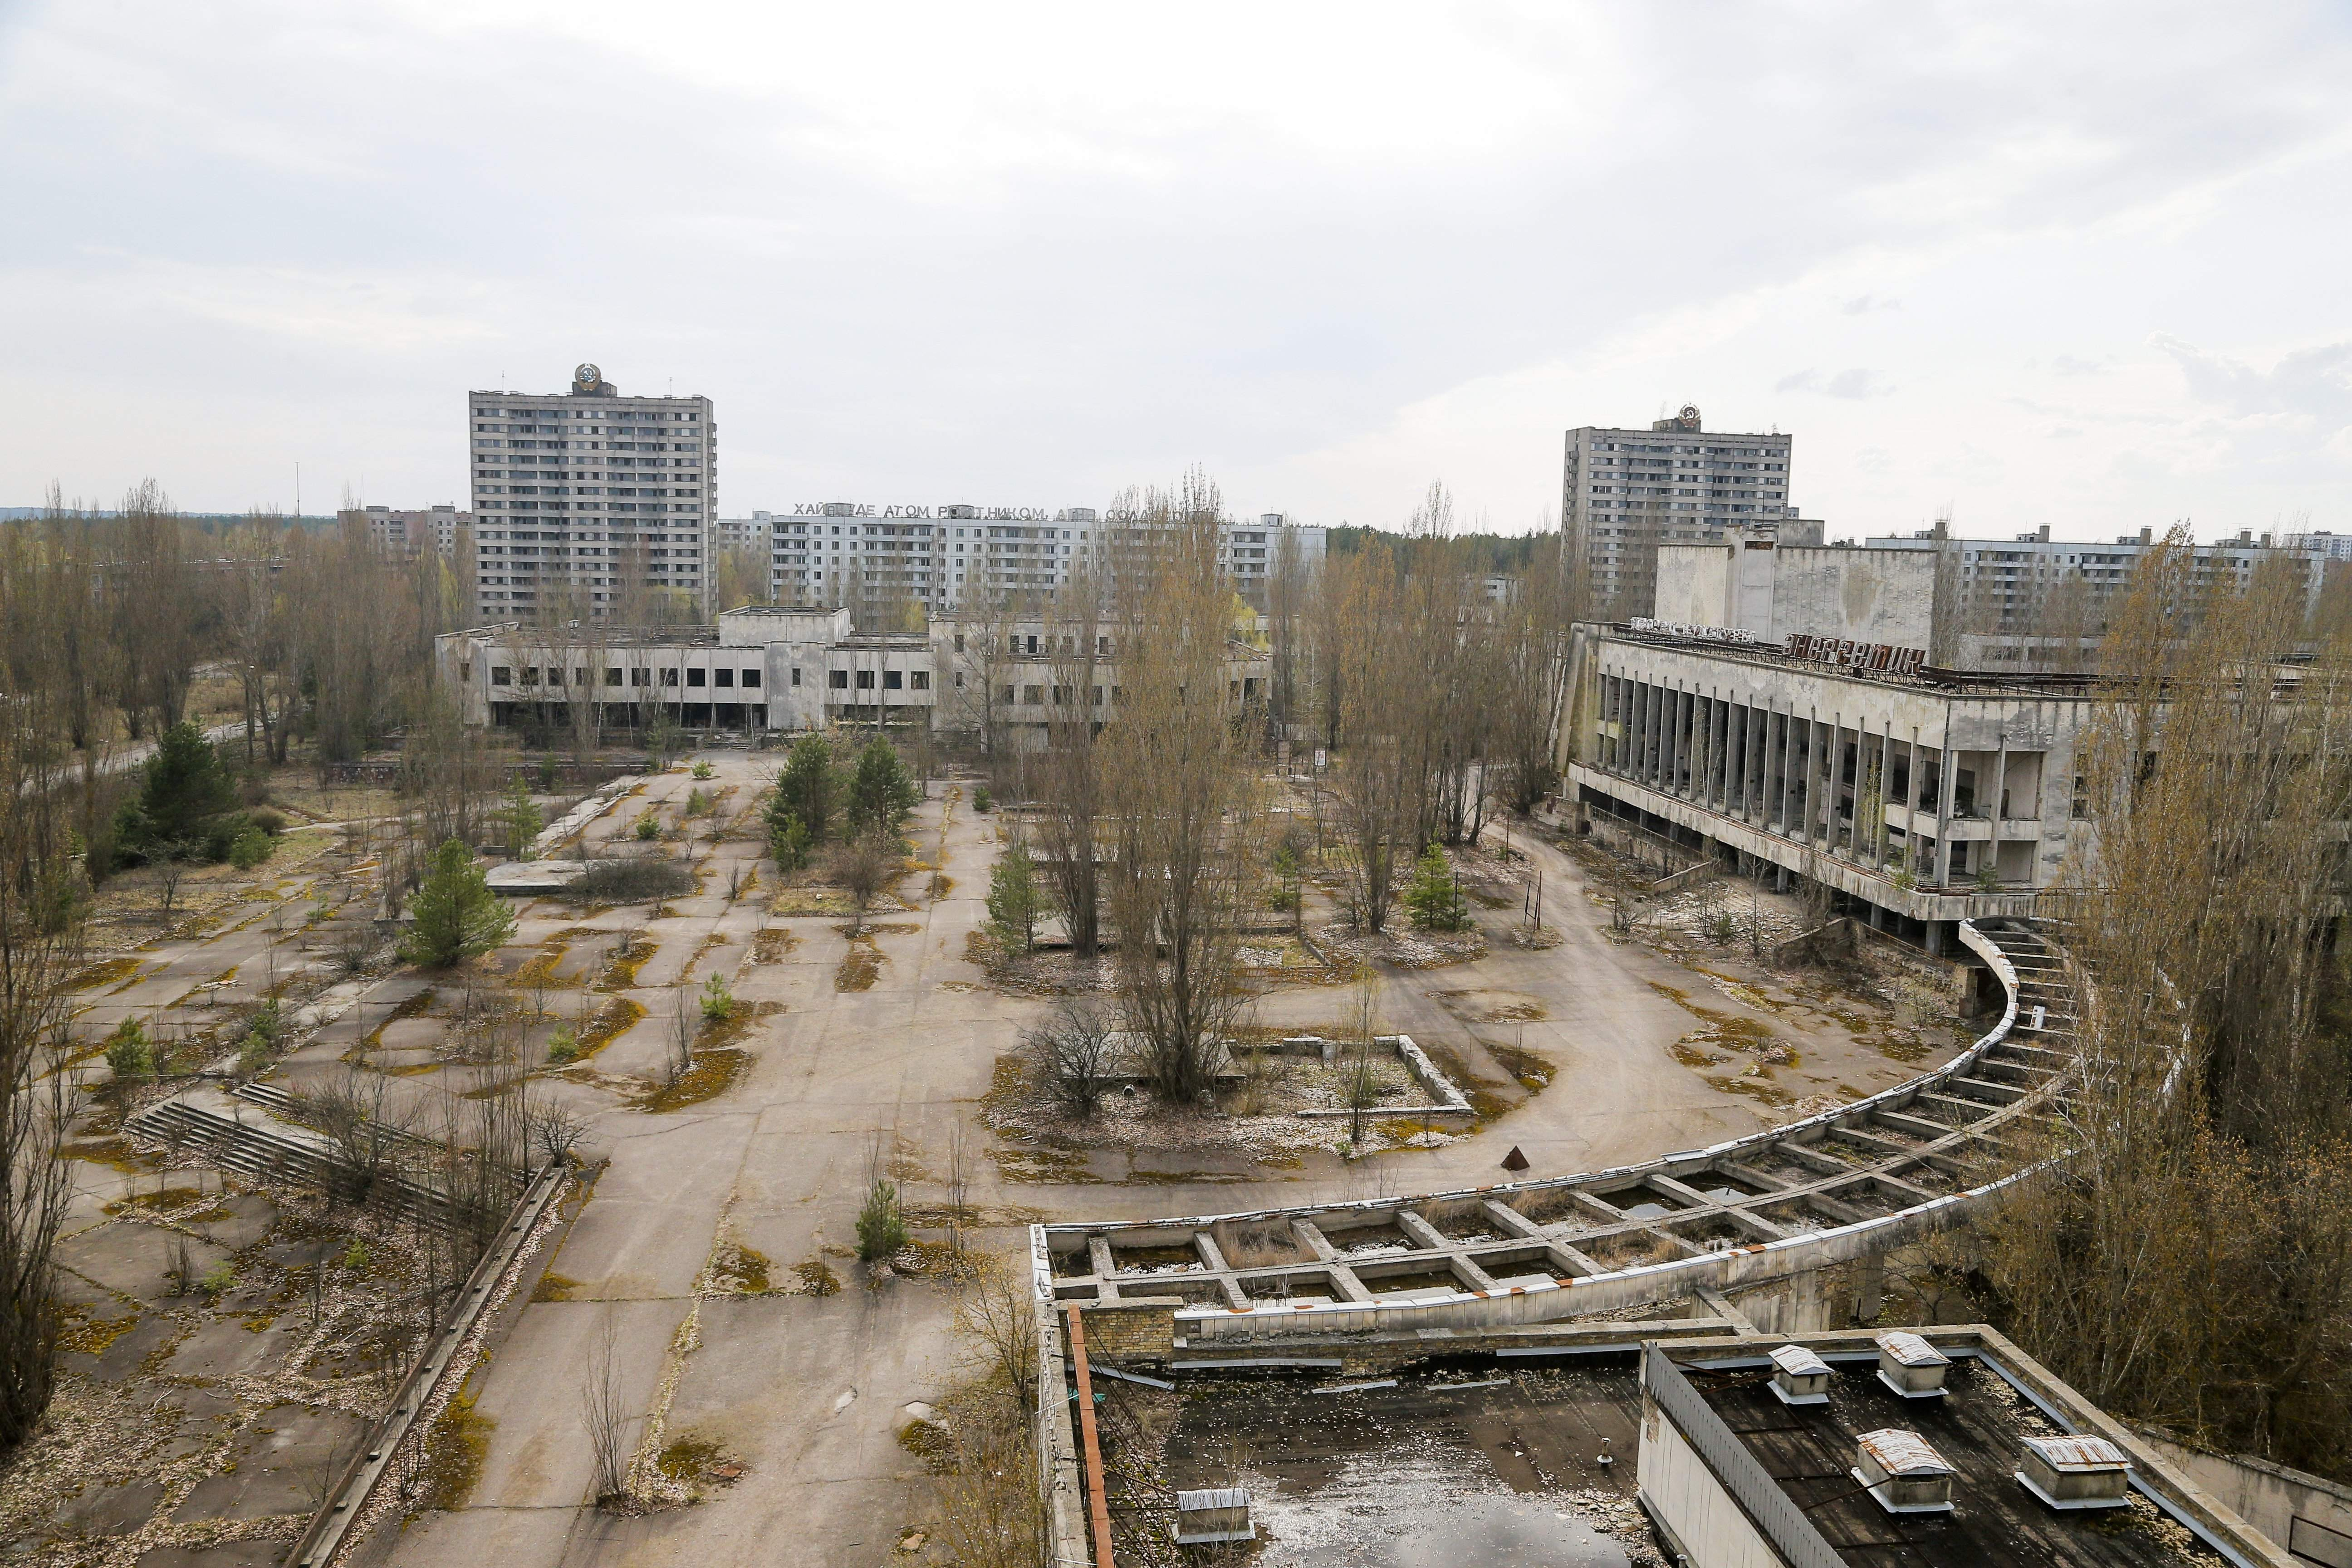 This photo taken Wednesday, April 5, 2017, shows a central square in the deserted town of Pripyat, some 3 kilometers (1.86 miles) from the Chernobyl nuclear power plant Ukraine. Once home to some 50,000 people whose lives were connected to the Chernobyl nuclear power plant, Pripyat was hastily evacuated one day after a reactor at the plant 3 kilometers (2 miles away) exploded on April 26, 1986. The explosion and the subsequent fire spewed a radioactive plume over much of northern Europe. THE ASSOCIATED PRESS